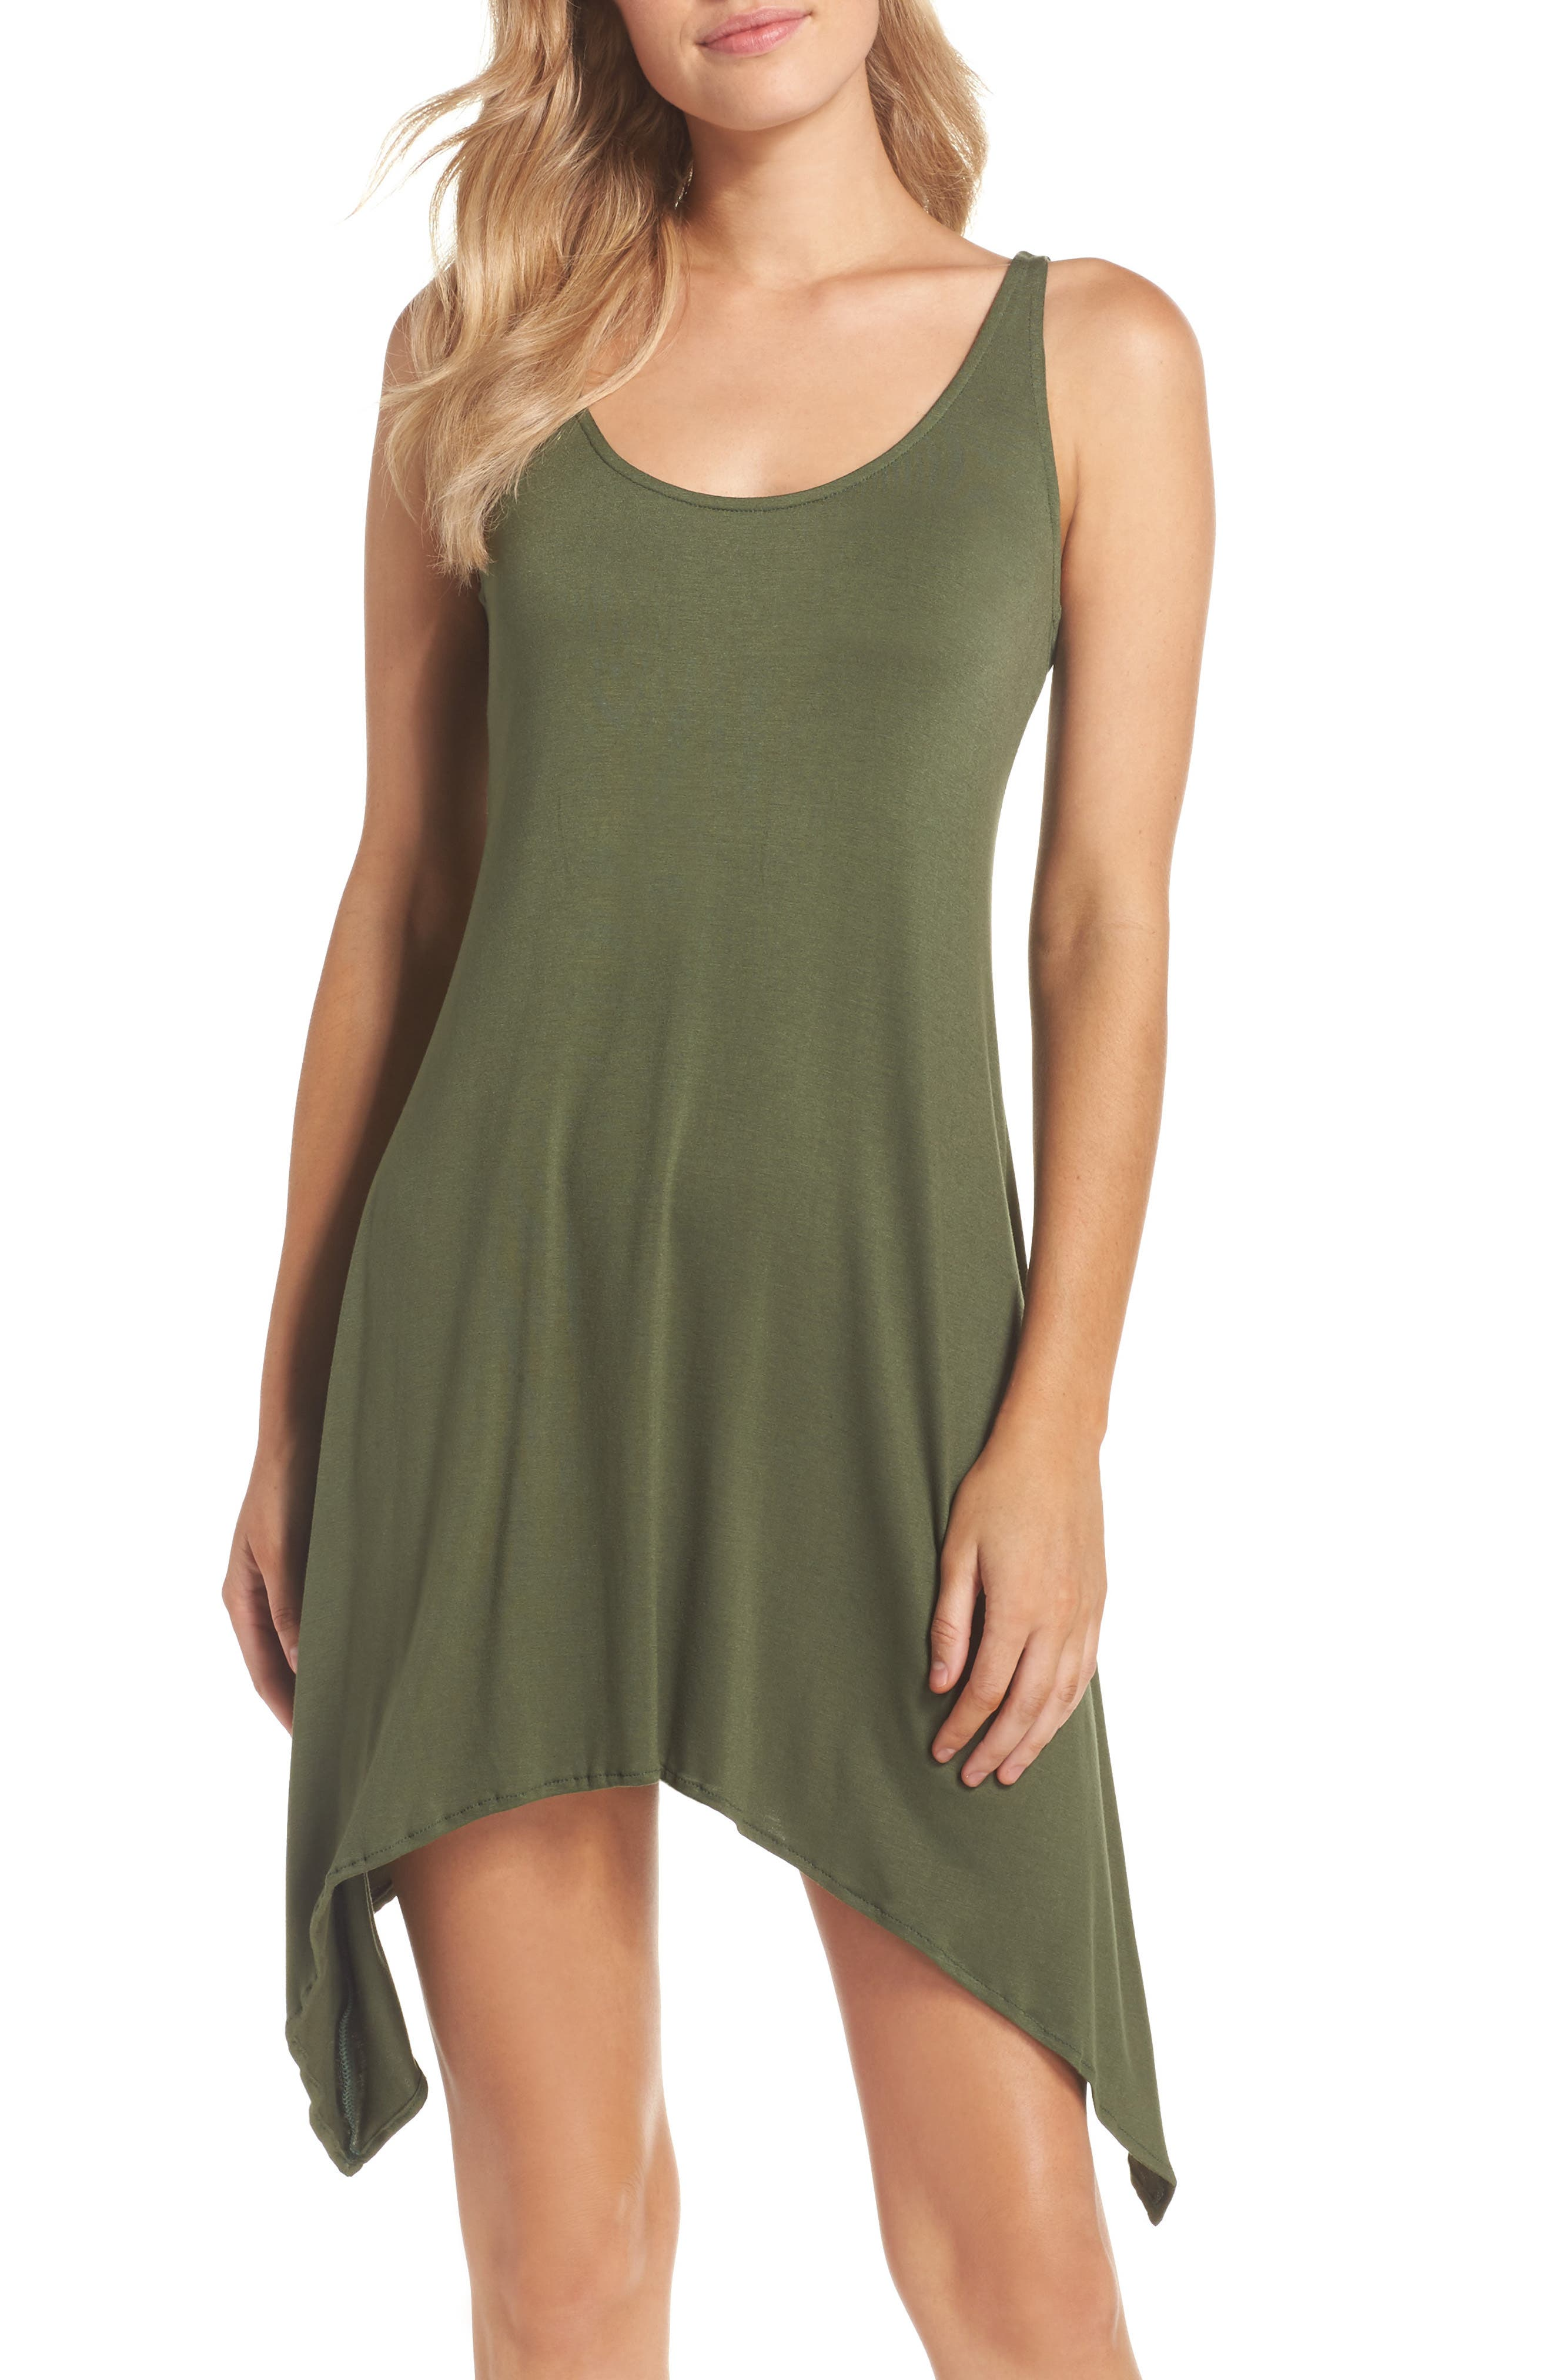 Alternate Image 1 Selected - Lucky Brand Take Cover Cover-Up Dress